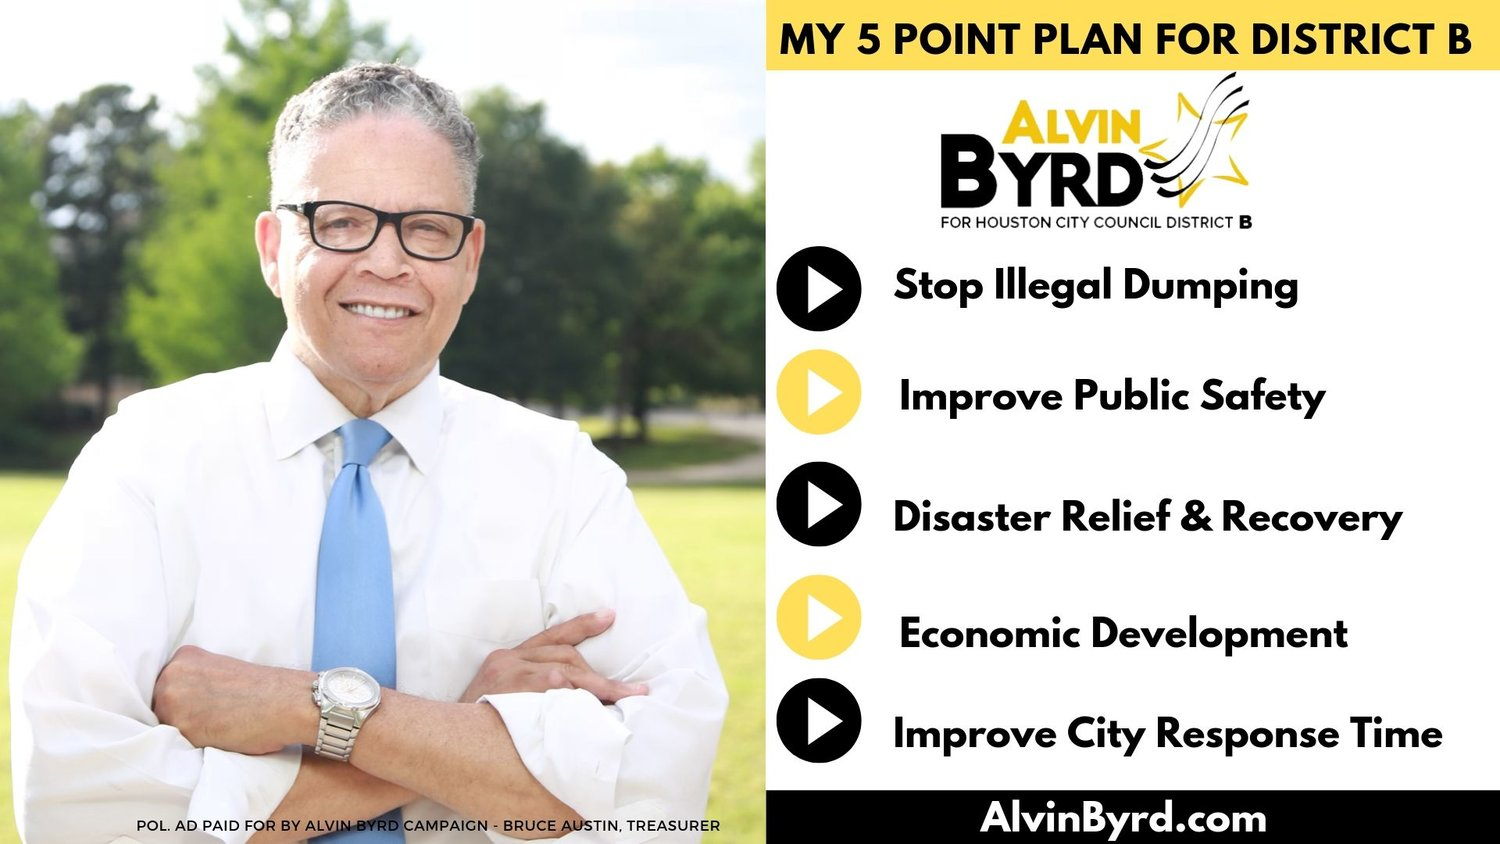 Byrd+5+Point+PLan.jpg